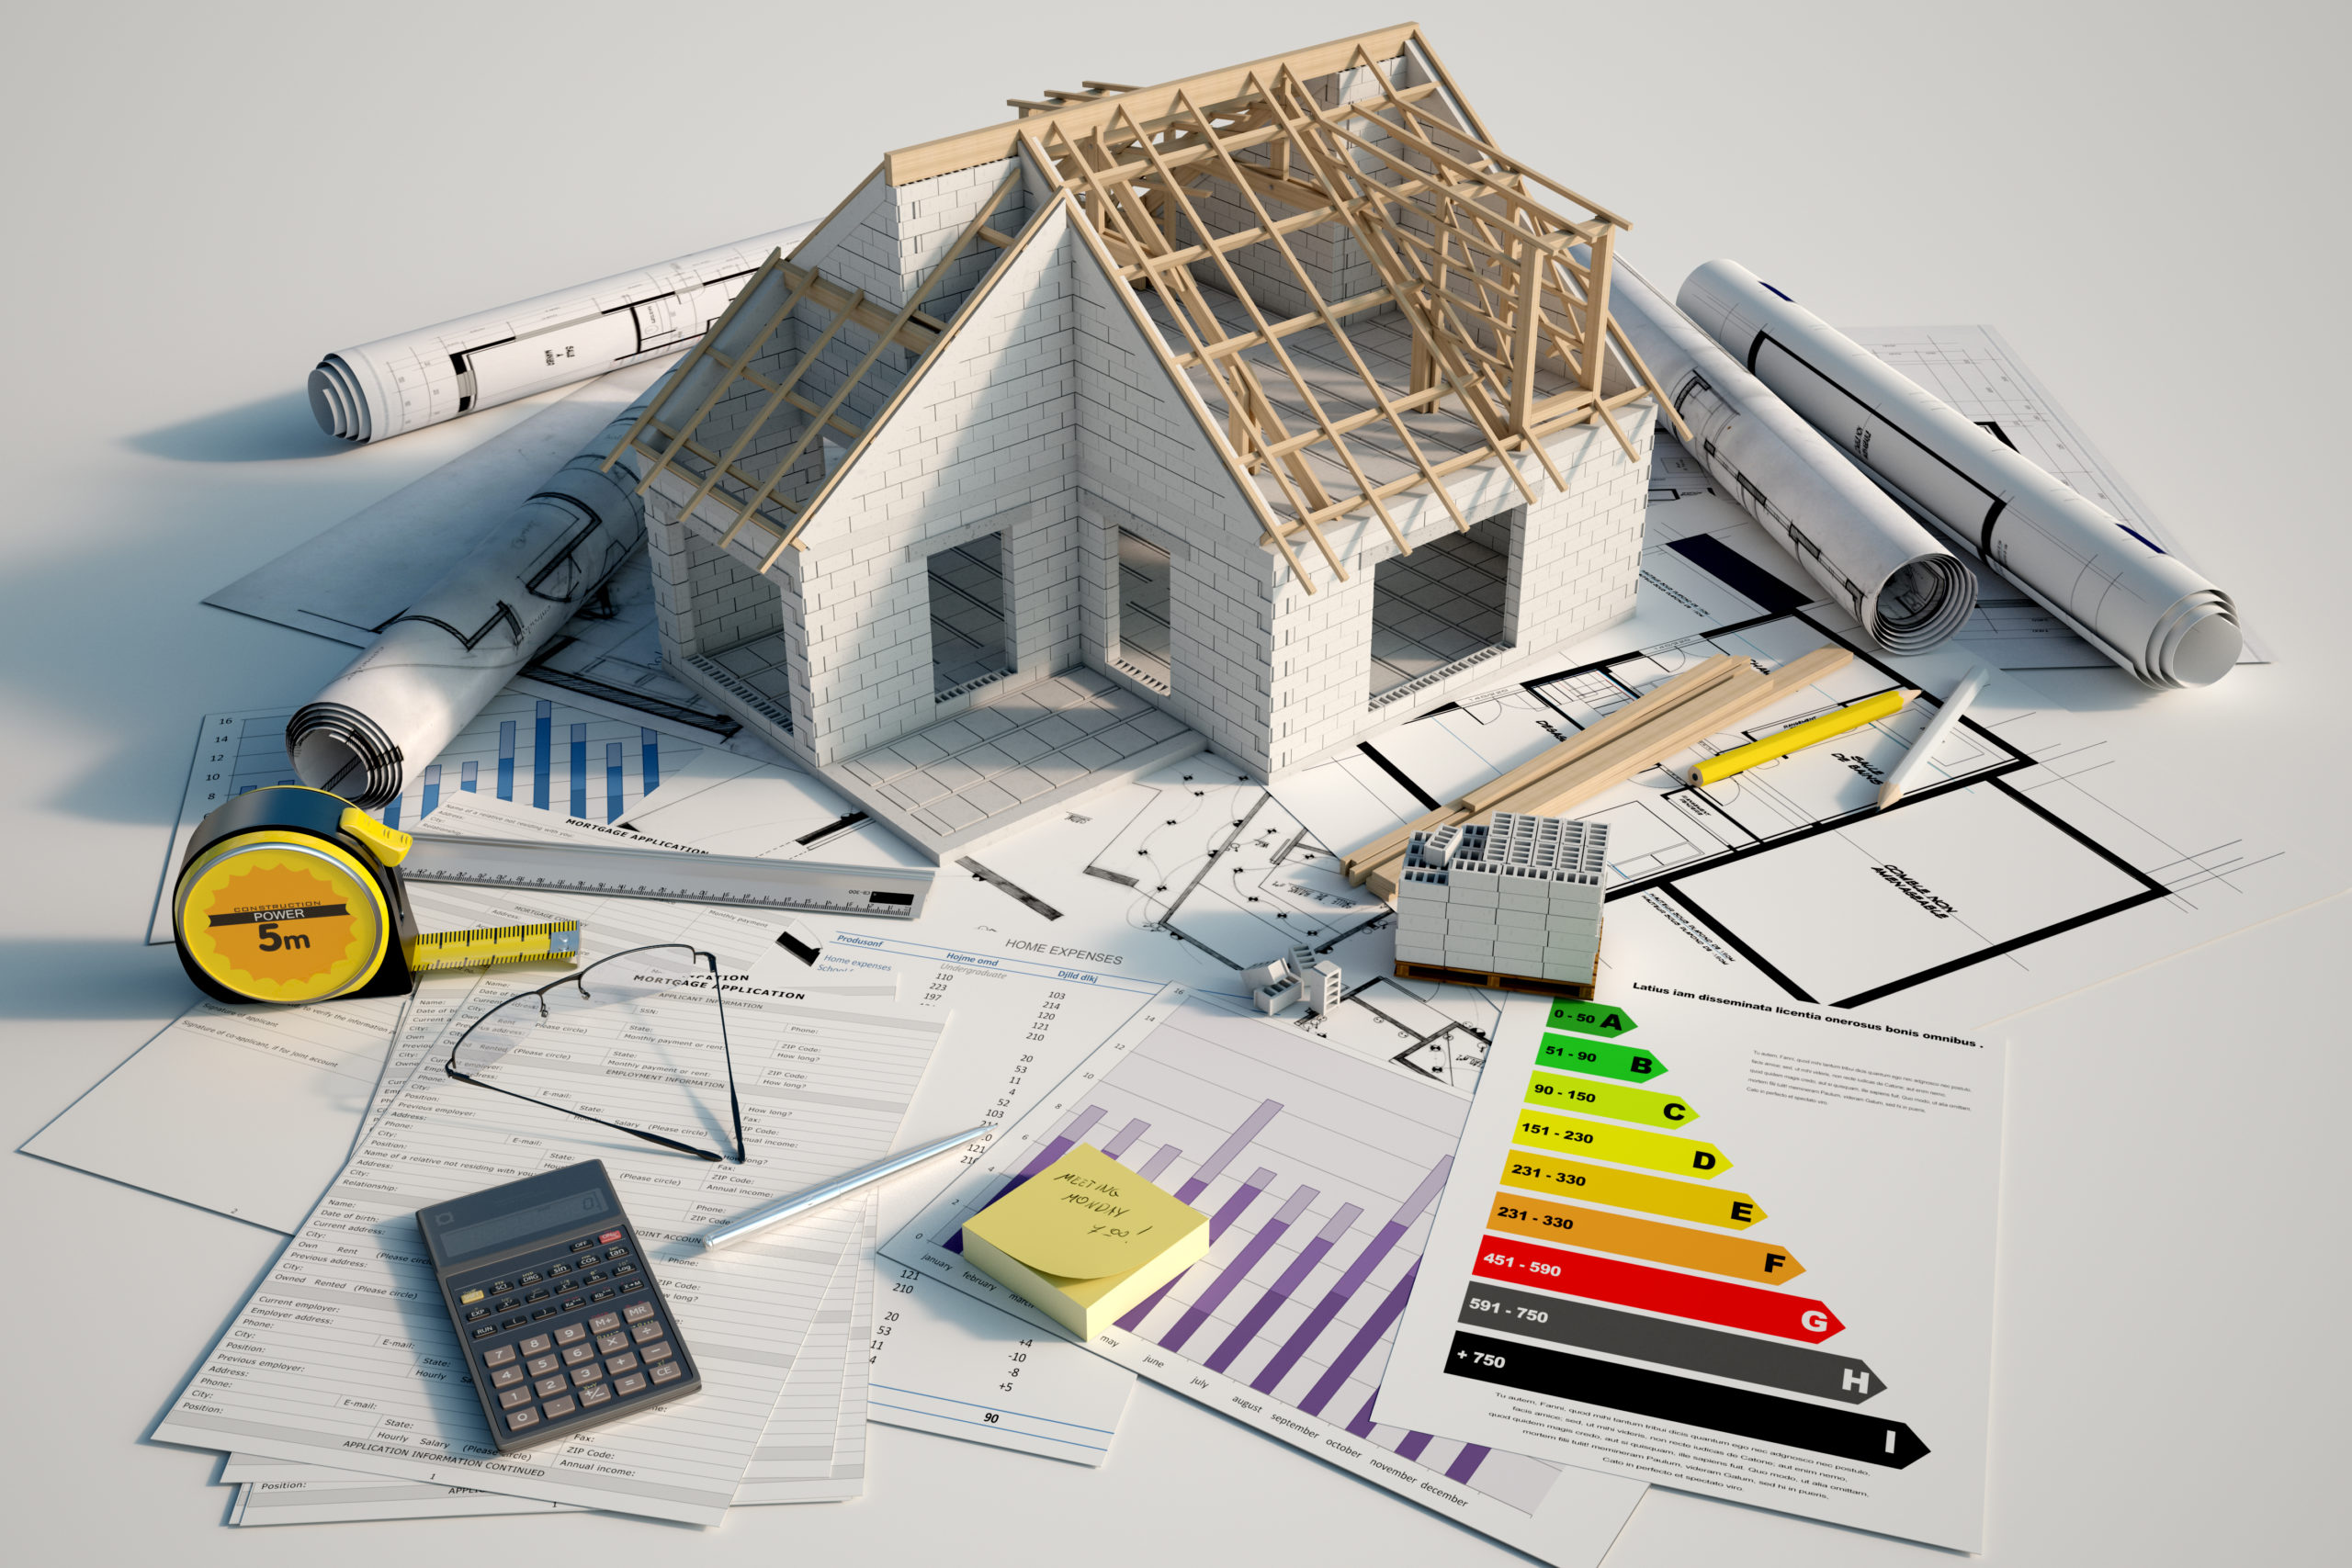 Survey: Industry perspective on creating a net zero built environment